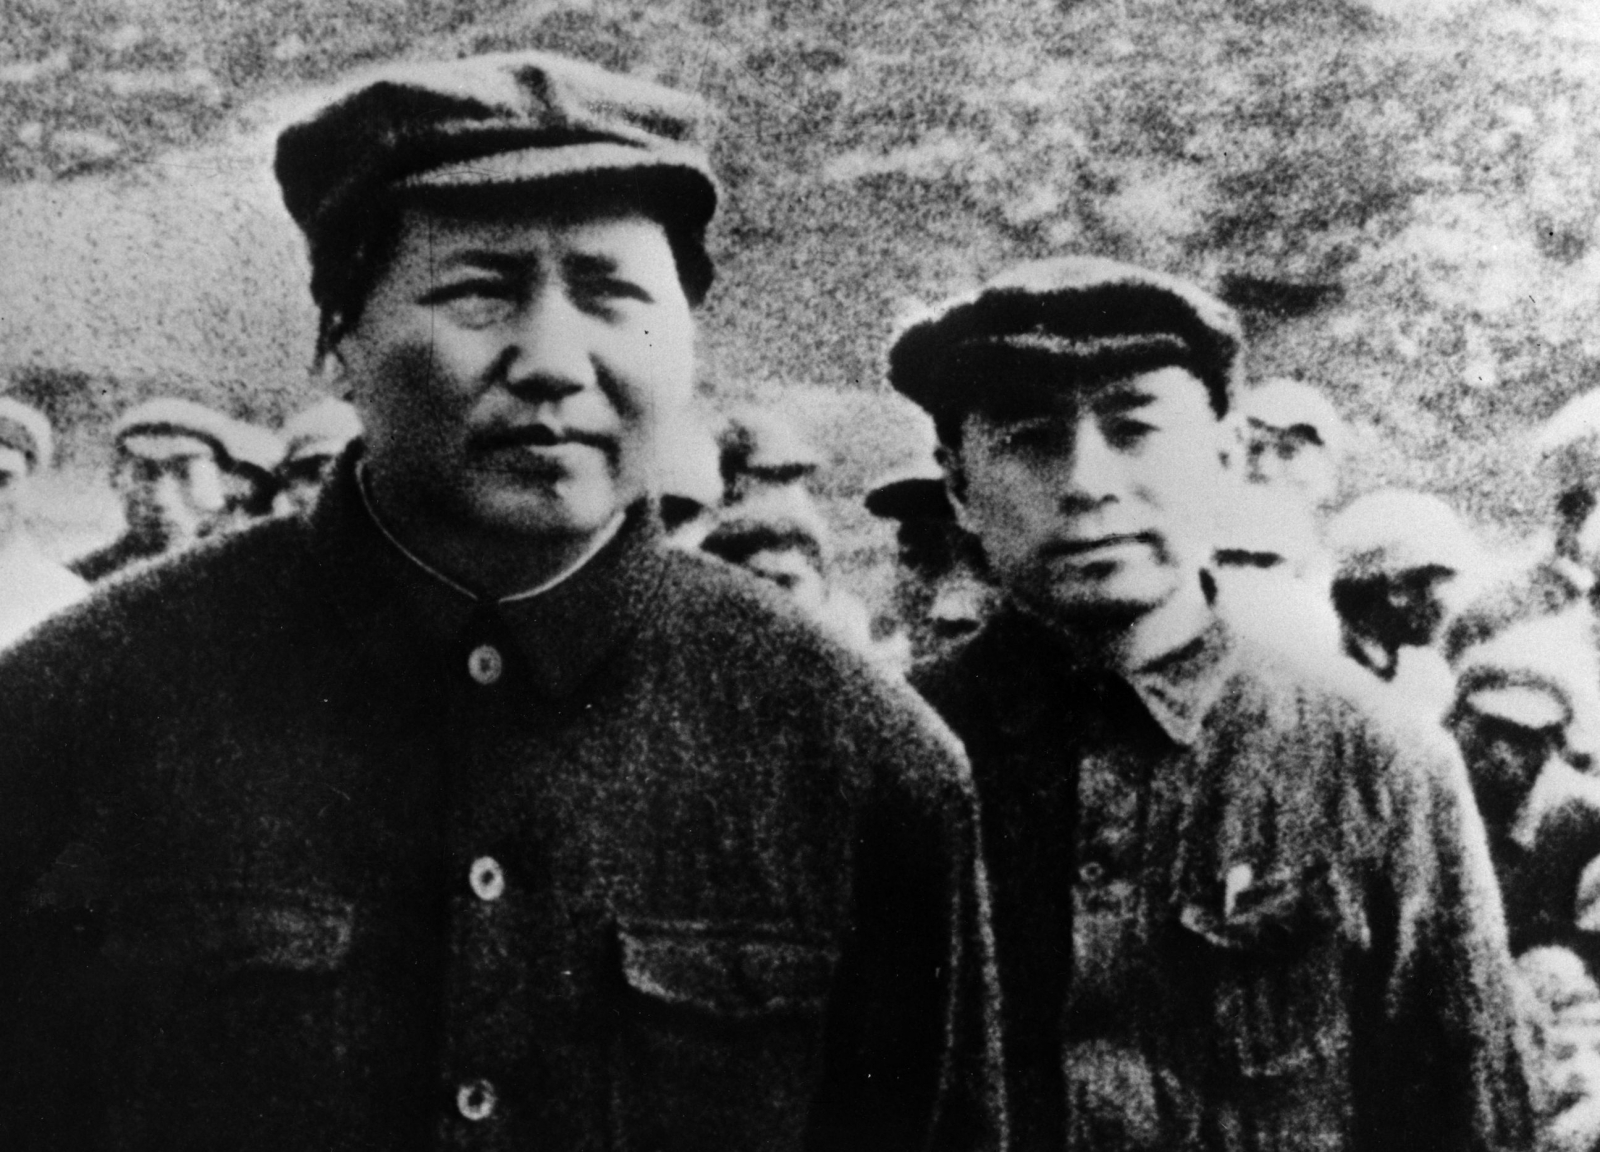 Chinese Communist Party leaders Mao Zedong and Zhou Enlai on The Long March